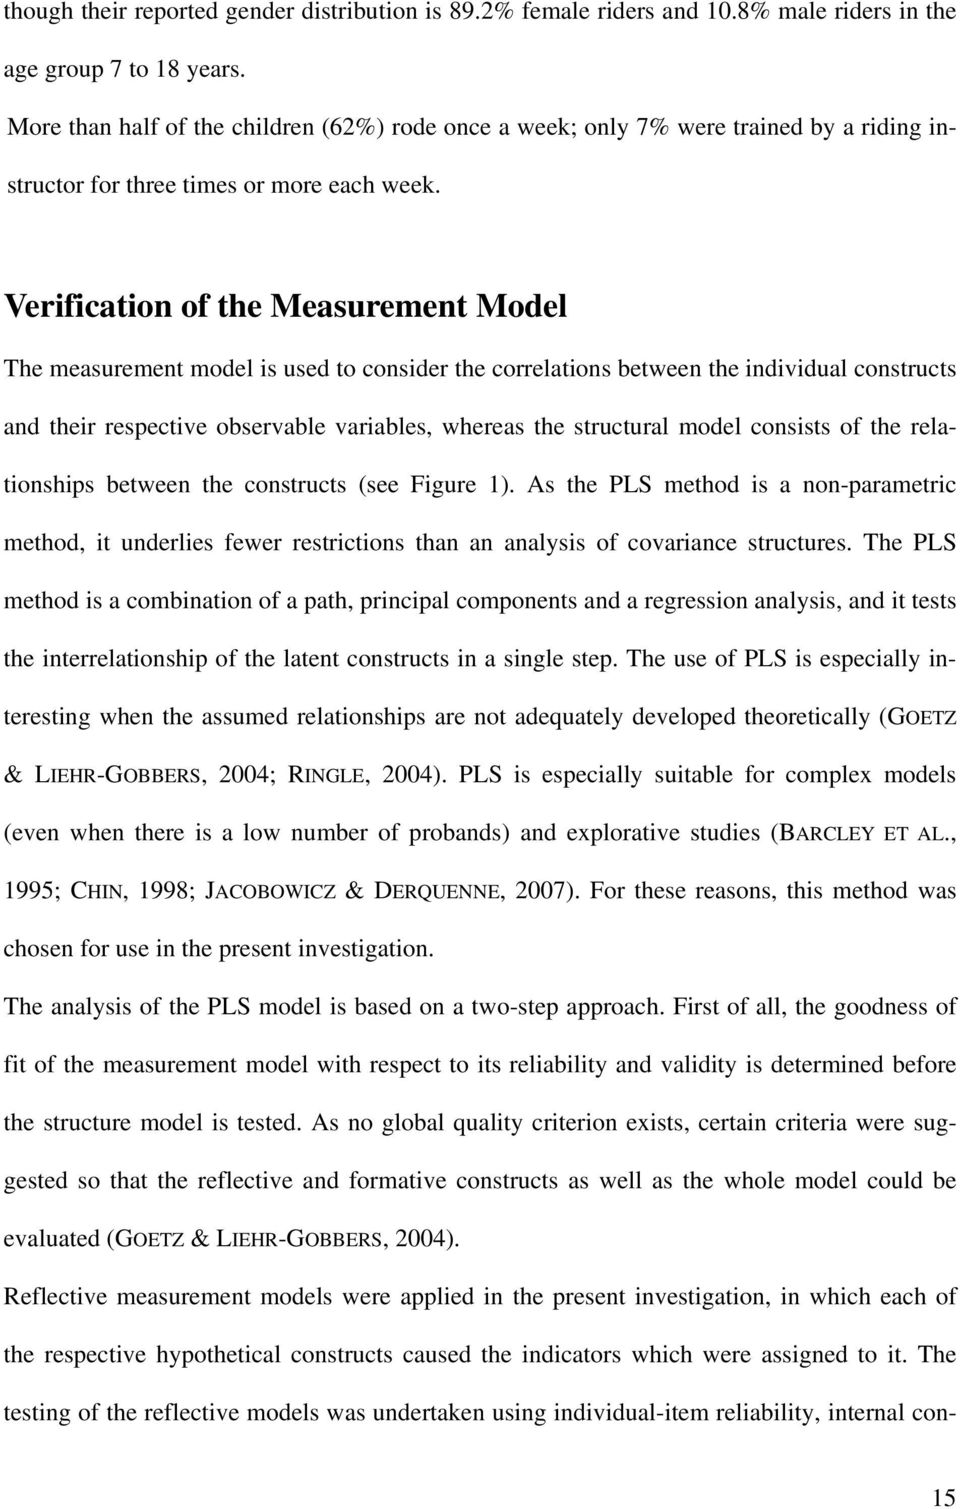 Verification of the Measurement Model The measurement model is used to consider the correlations between the individual constructs and their respective observable variables, whereas the structural